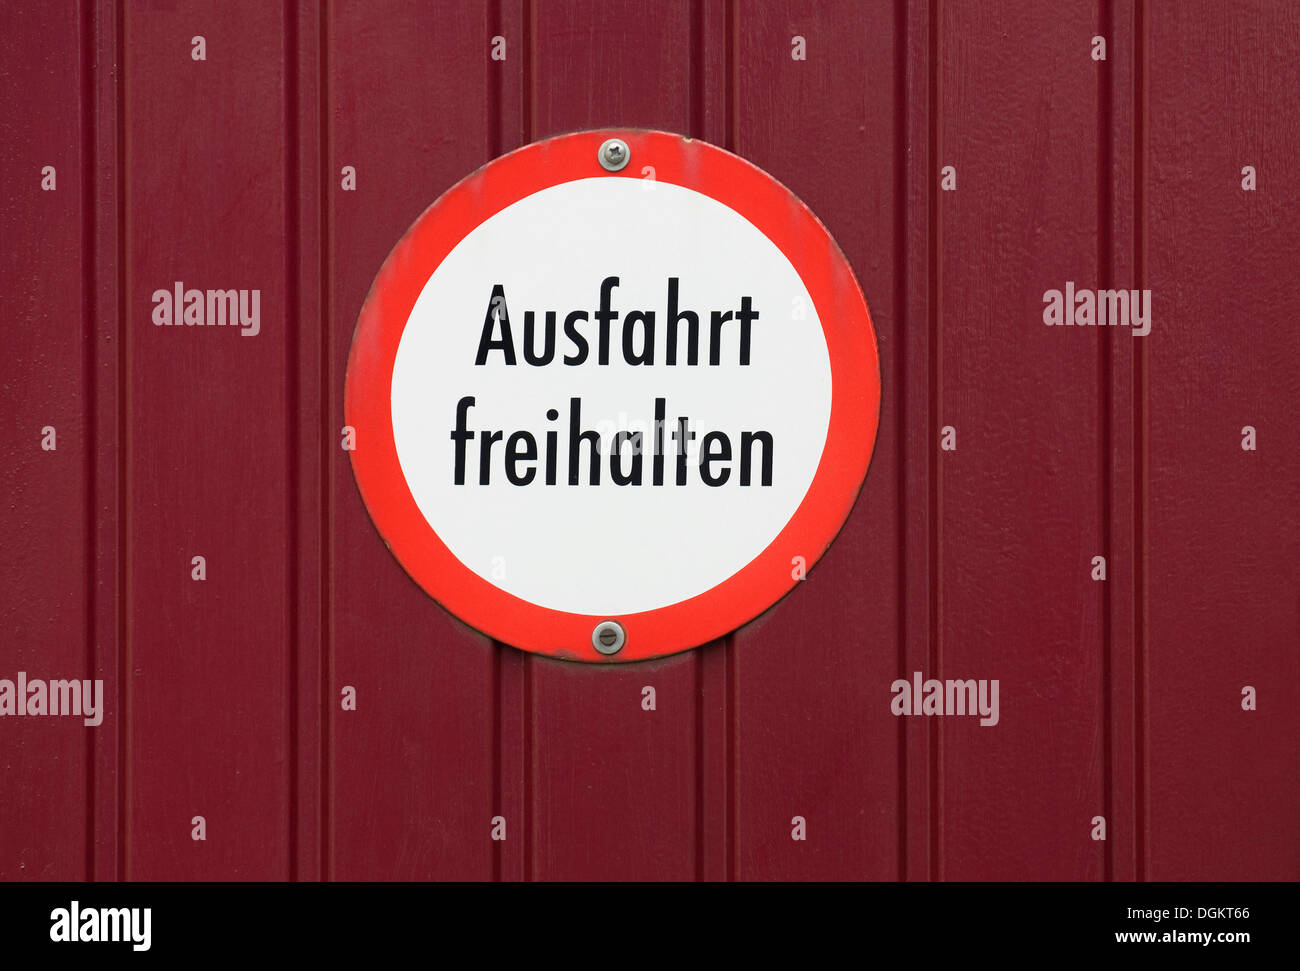 Sign, Ausfahrt freihalten, German for Keep clear - Stock Image